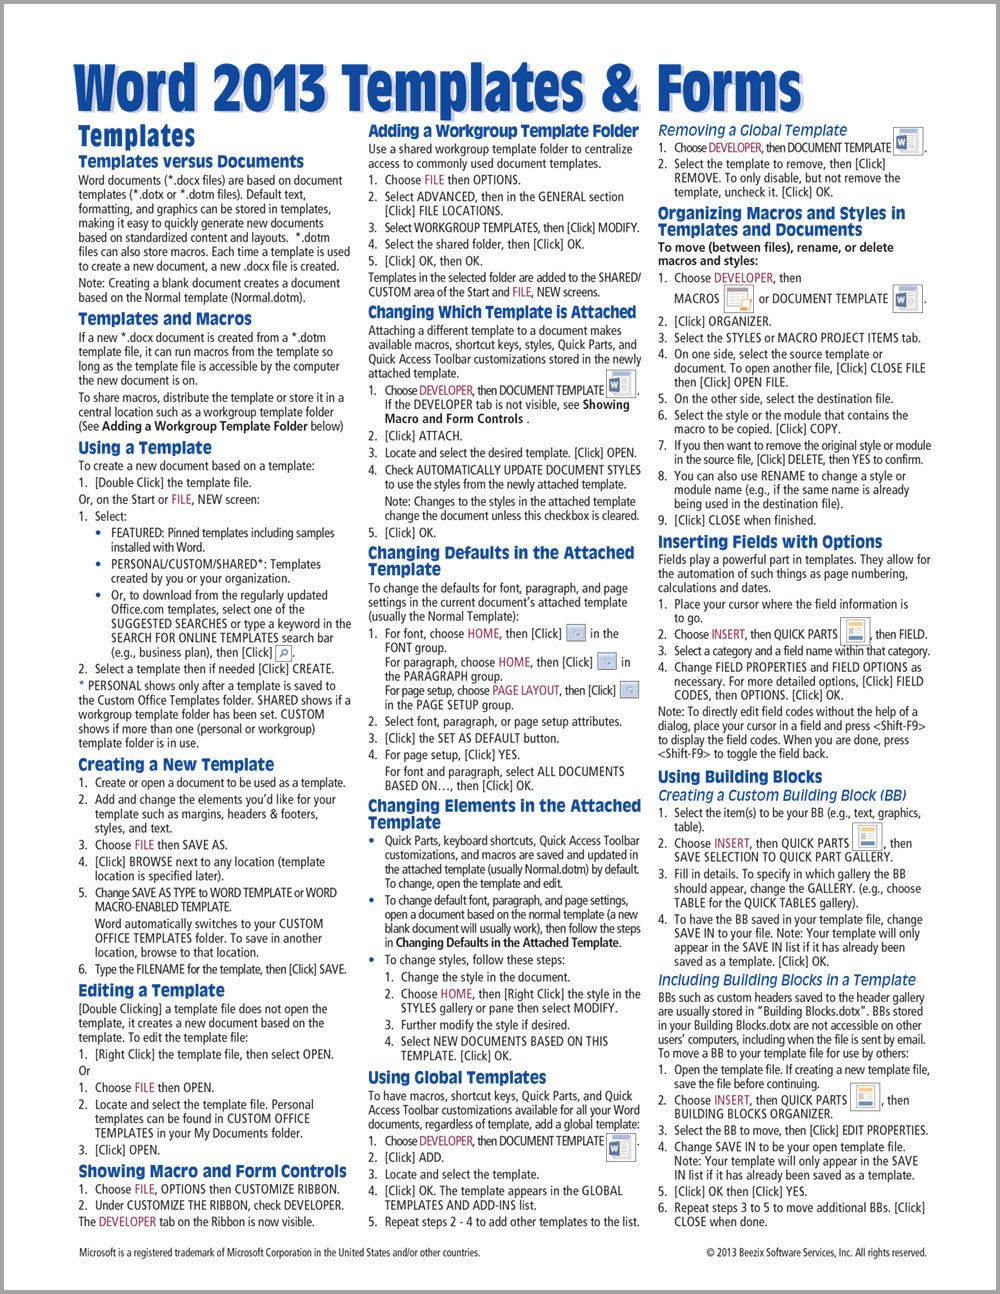 Microsoft word 2013 templates forms quick reference guide cheat microsoft word 2013 templates forms quick reference guide cheat sheet of instructions tips shortcuts laminated card beezix inc 9781936220847 maxwellsz